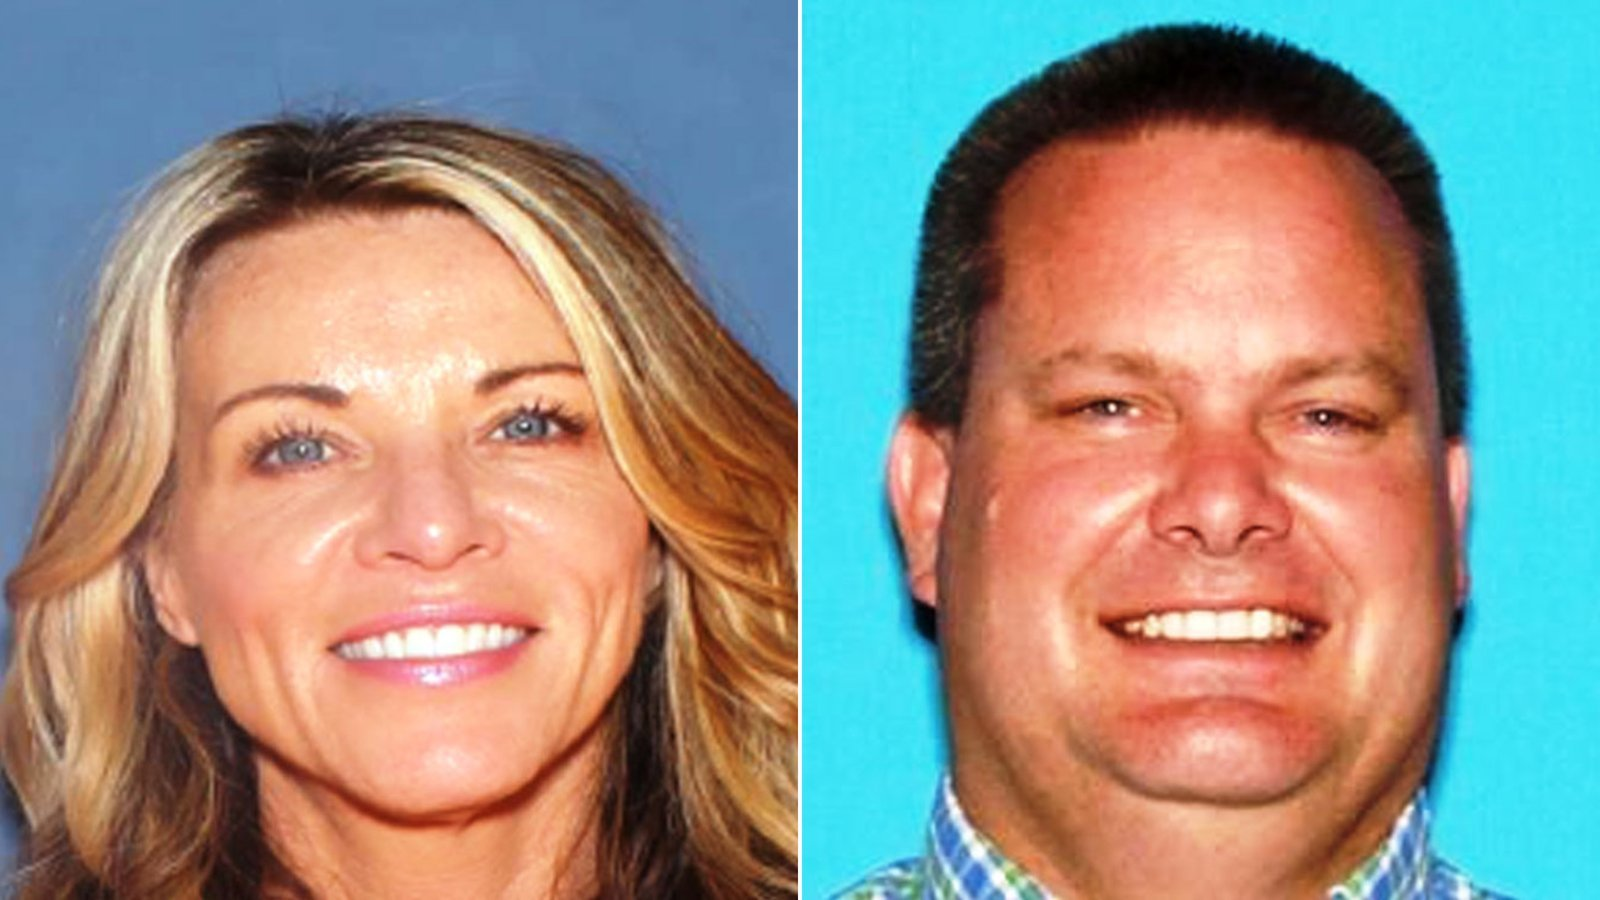 An attorney for the mother and stepfather of two missing Idaho children says he is in contact with the couple police want to question